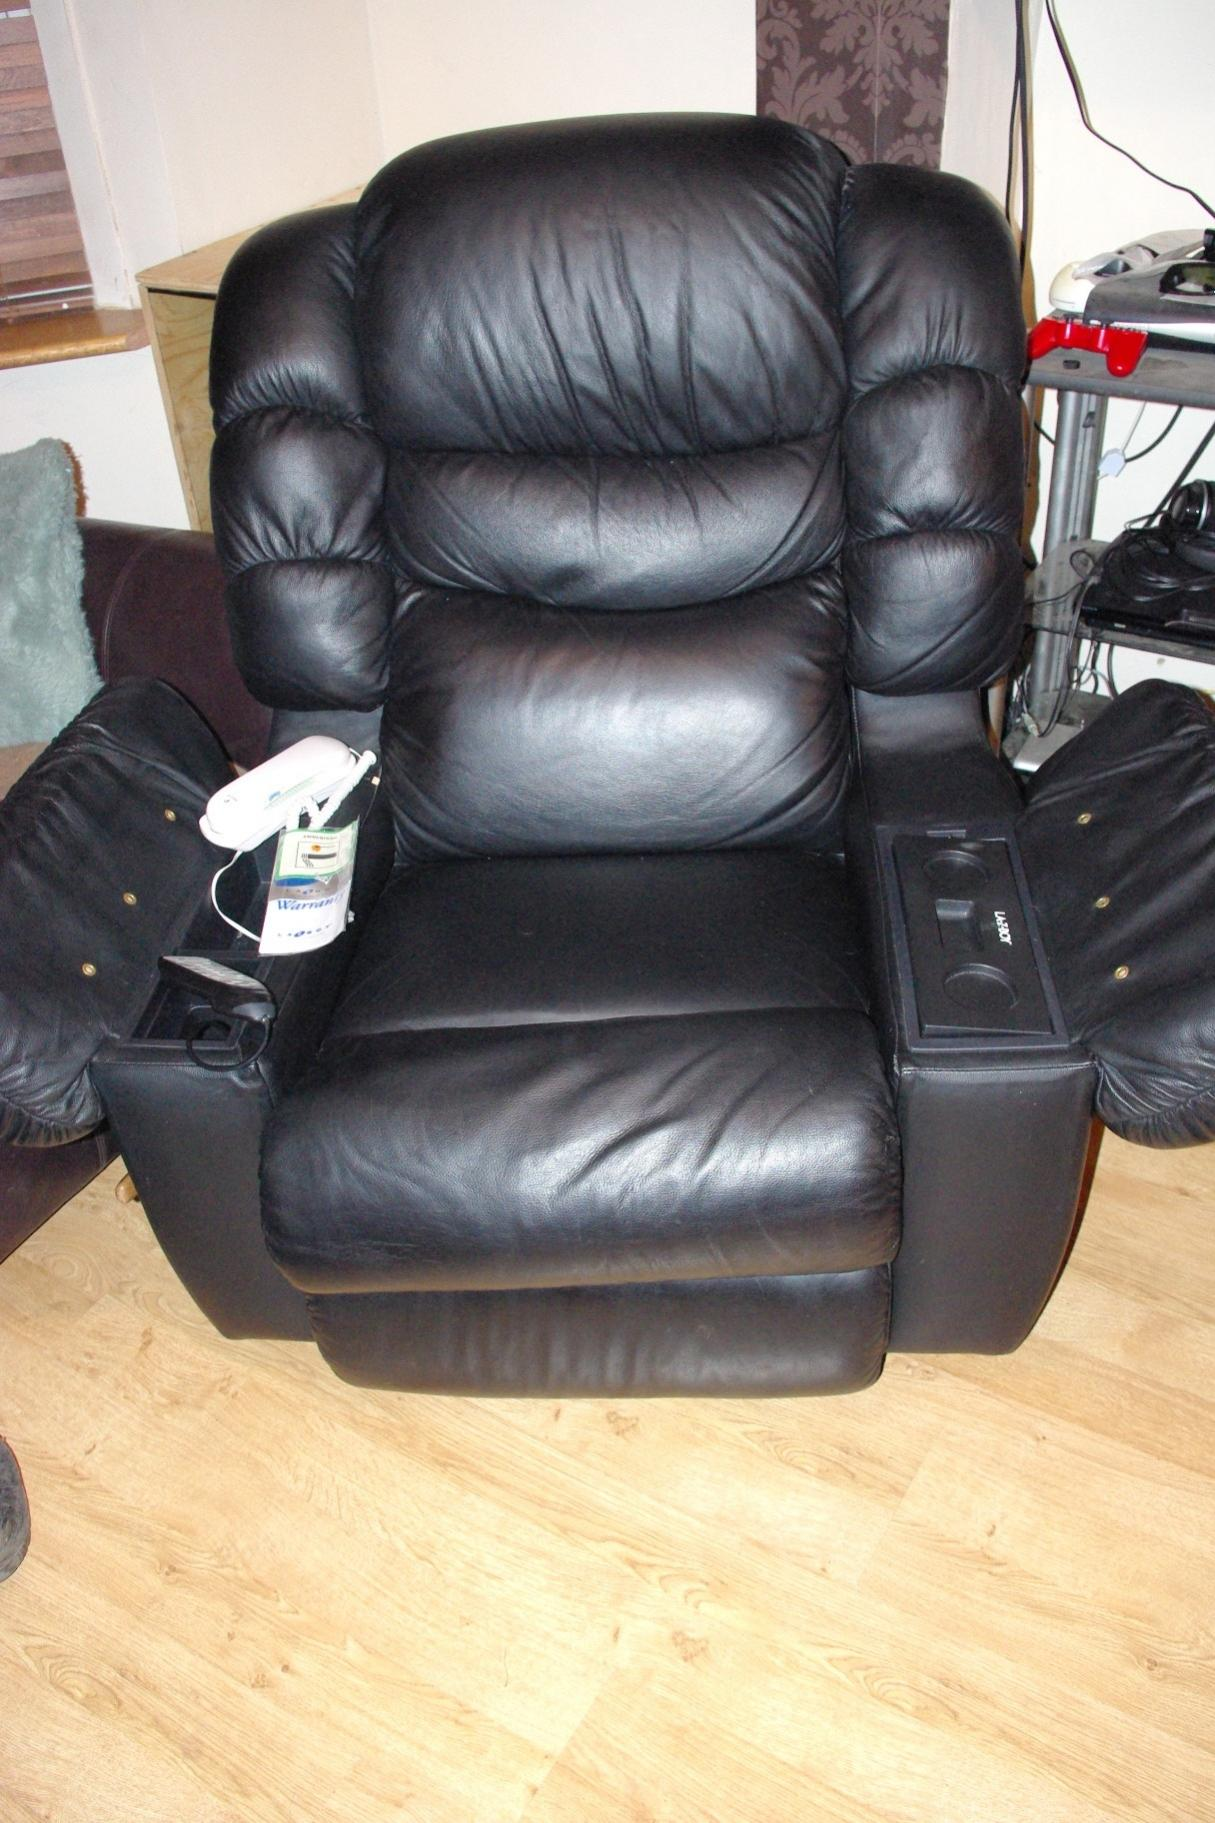 Leather l a z boy recliner with heat massage u0026 beer fridge-l-z-1. & Eastern Leather l a z boy recliner with heat massage u0026 beer ... islam-shia.org